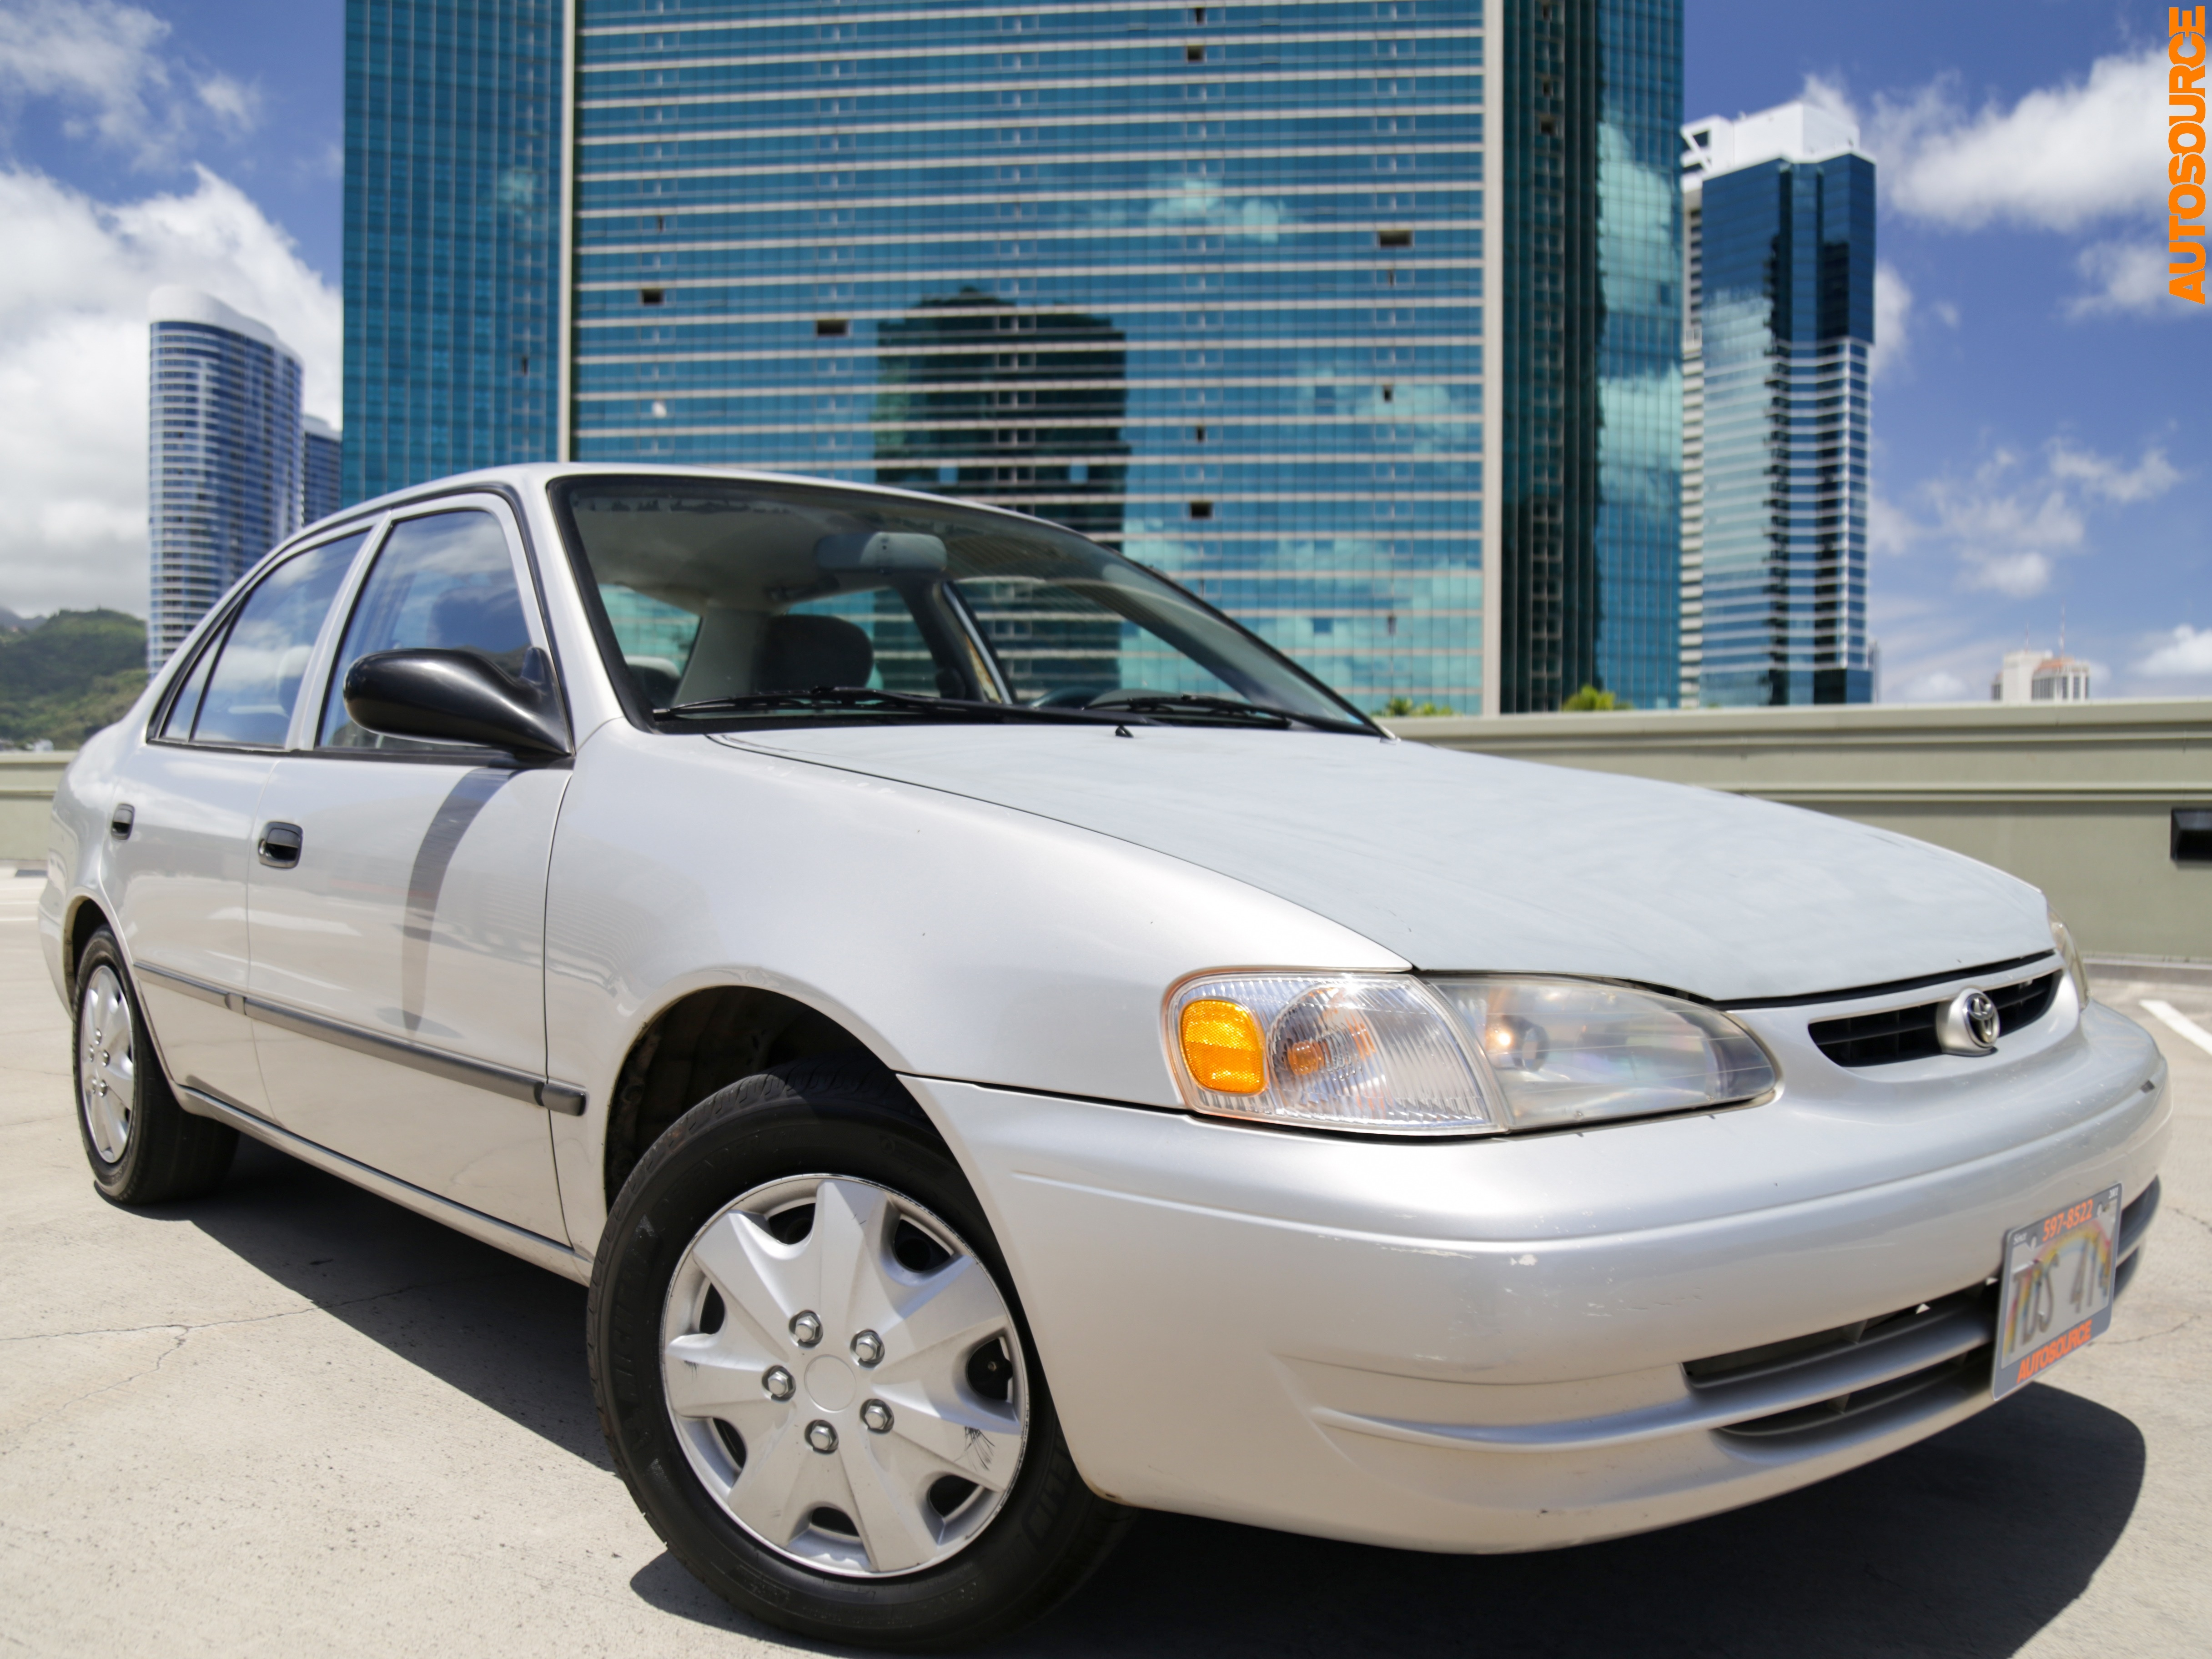 1999 toyota corolla ce autosource dealership in honolulu 1999 toyota corolla ce autosource dealership in honolulu